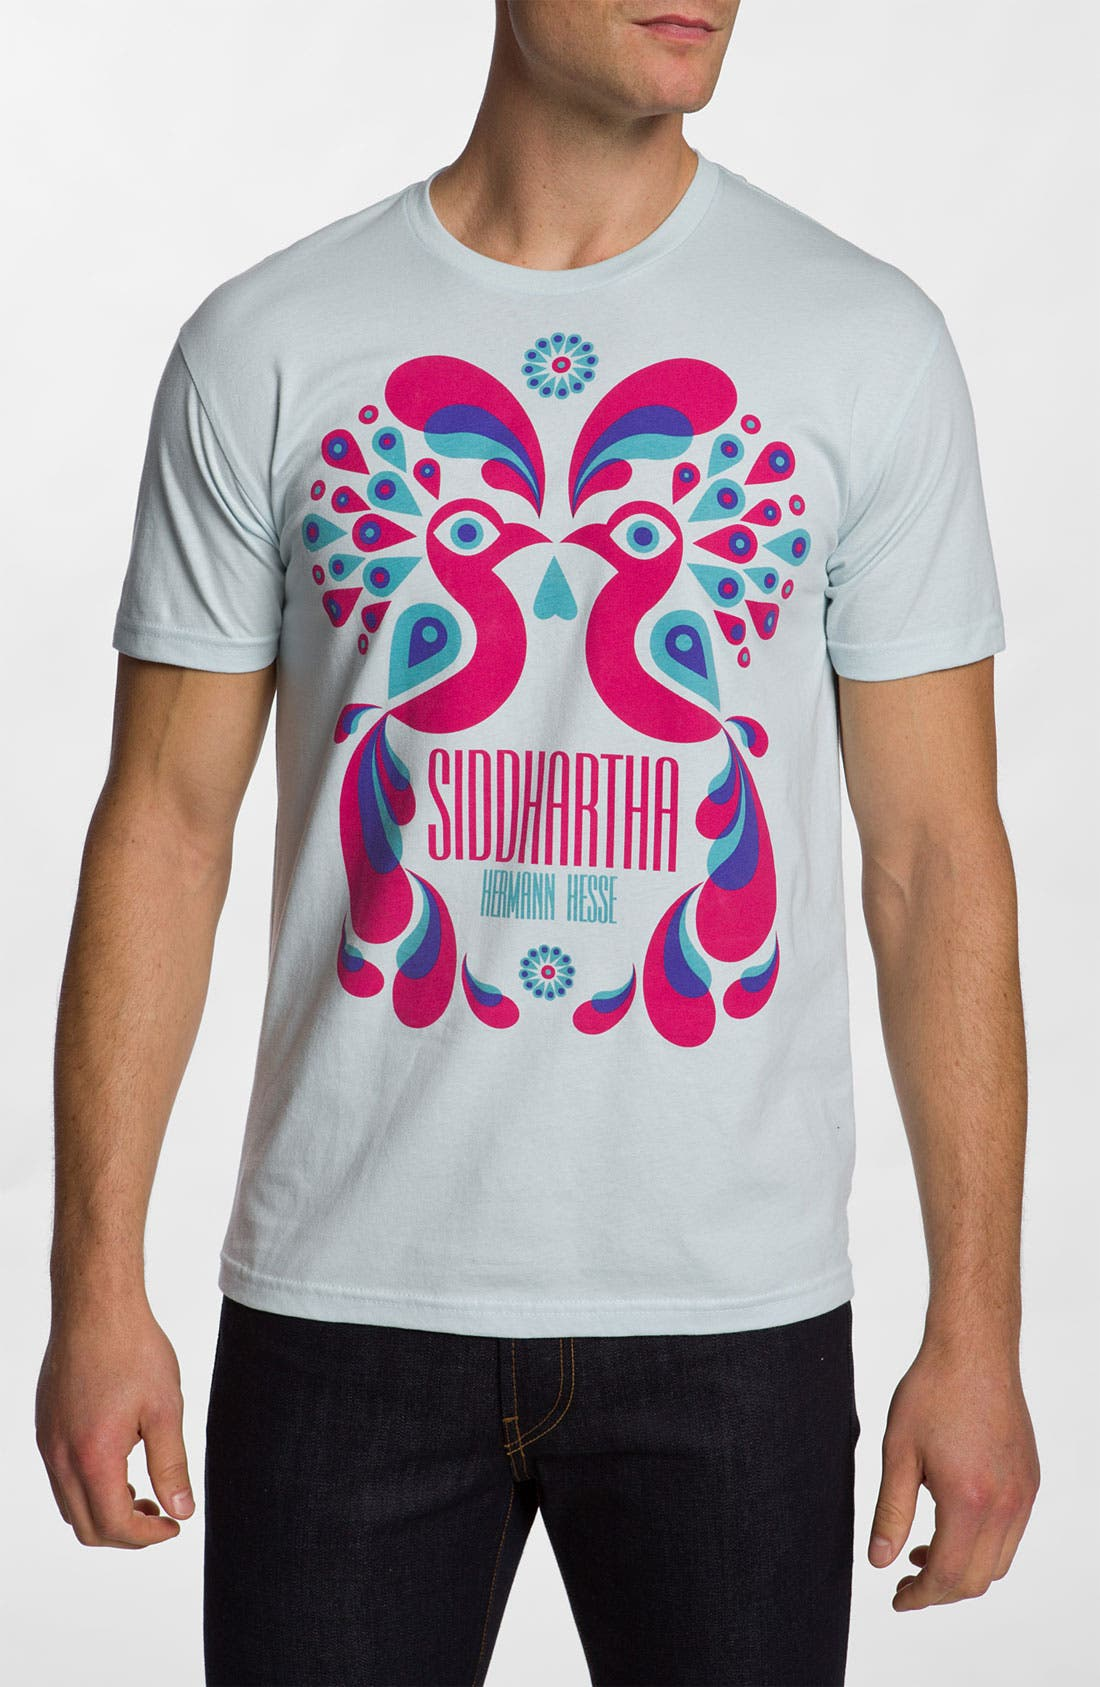 Alternate Image 1 Selected - Out of Print 'Siddhartha' Graphic T-Shirt